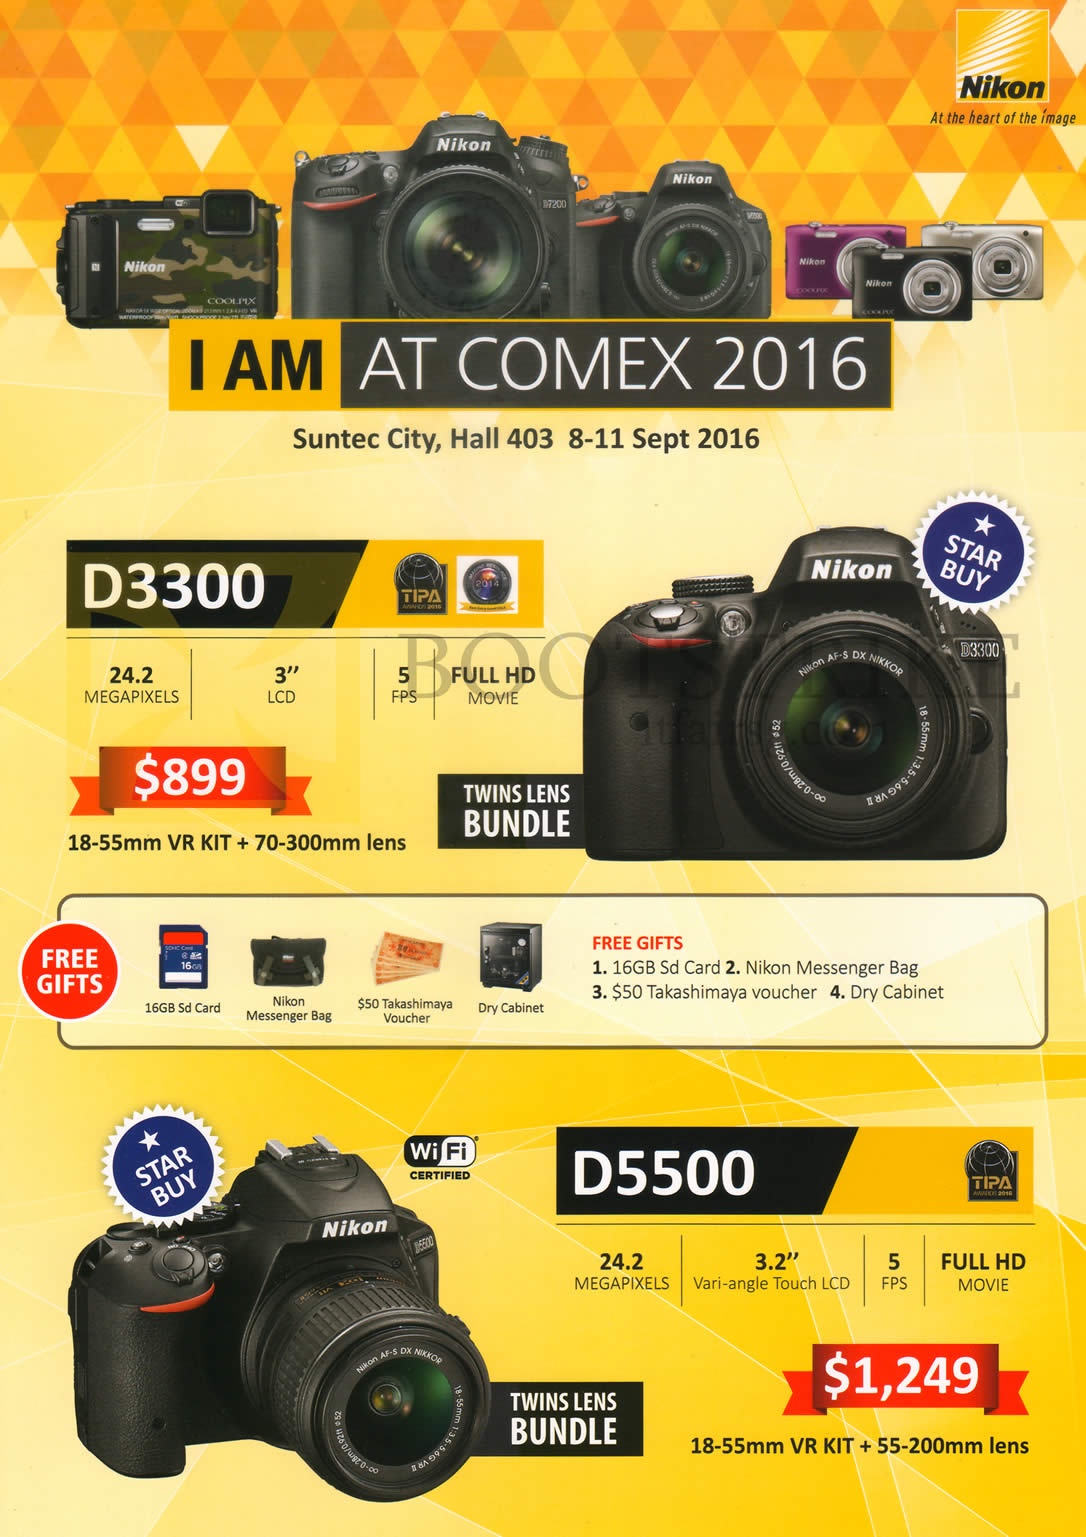 COMEX 2016 price list image brochure of Nikon Digital Cameras DSLR D3300, D5500